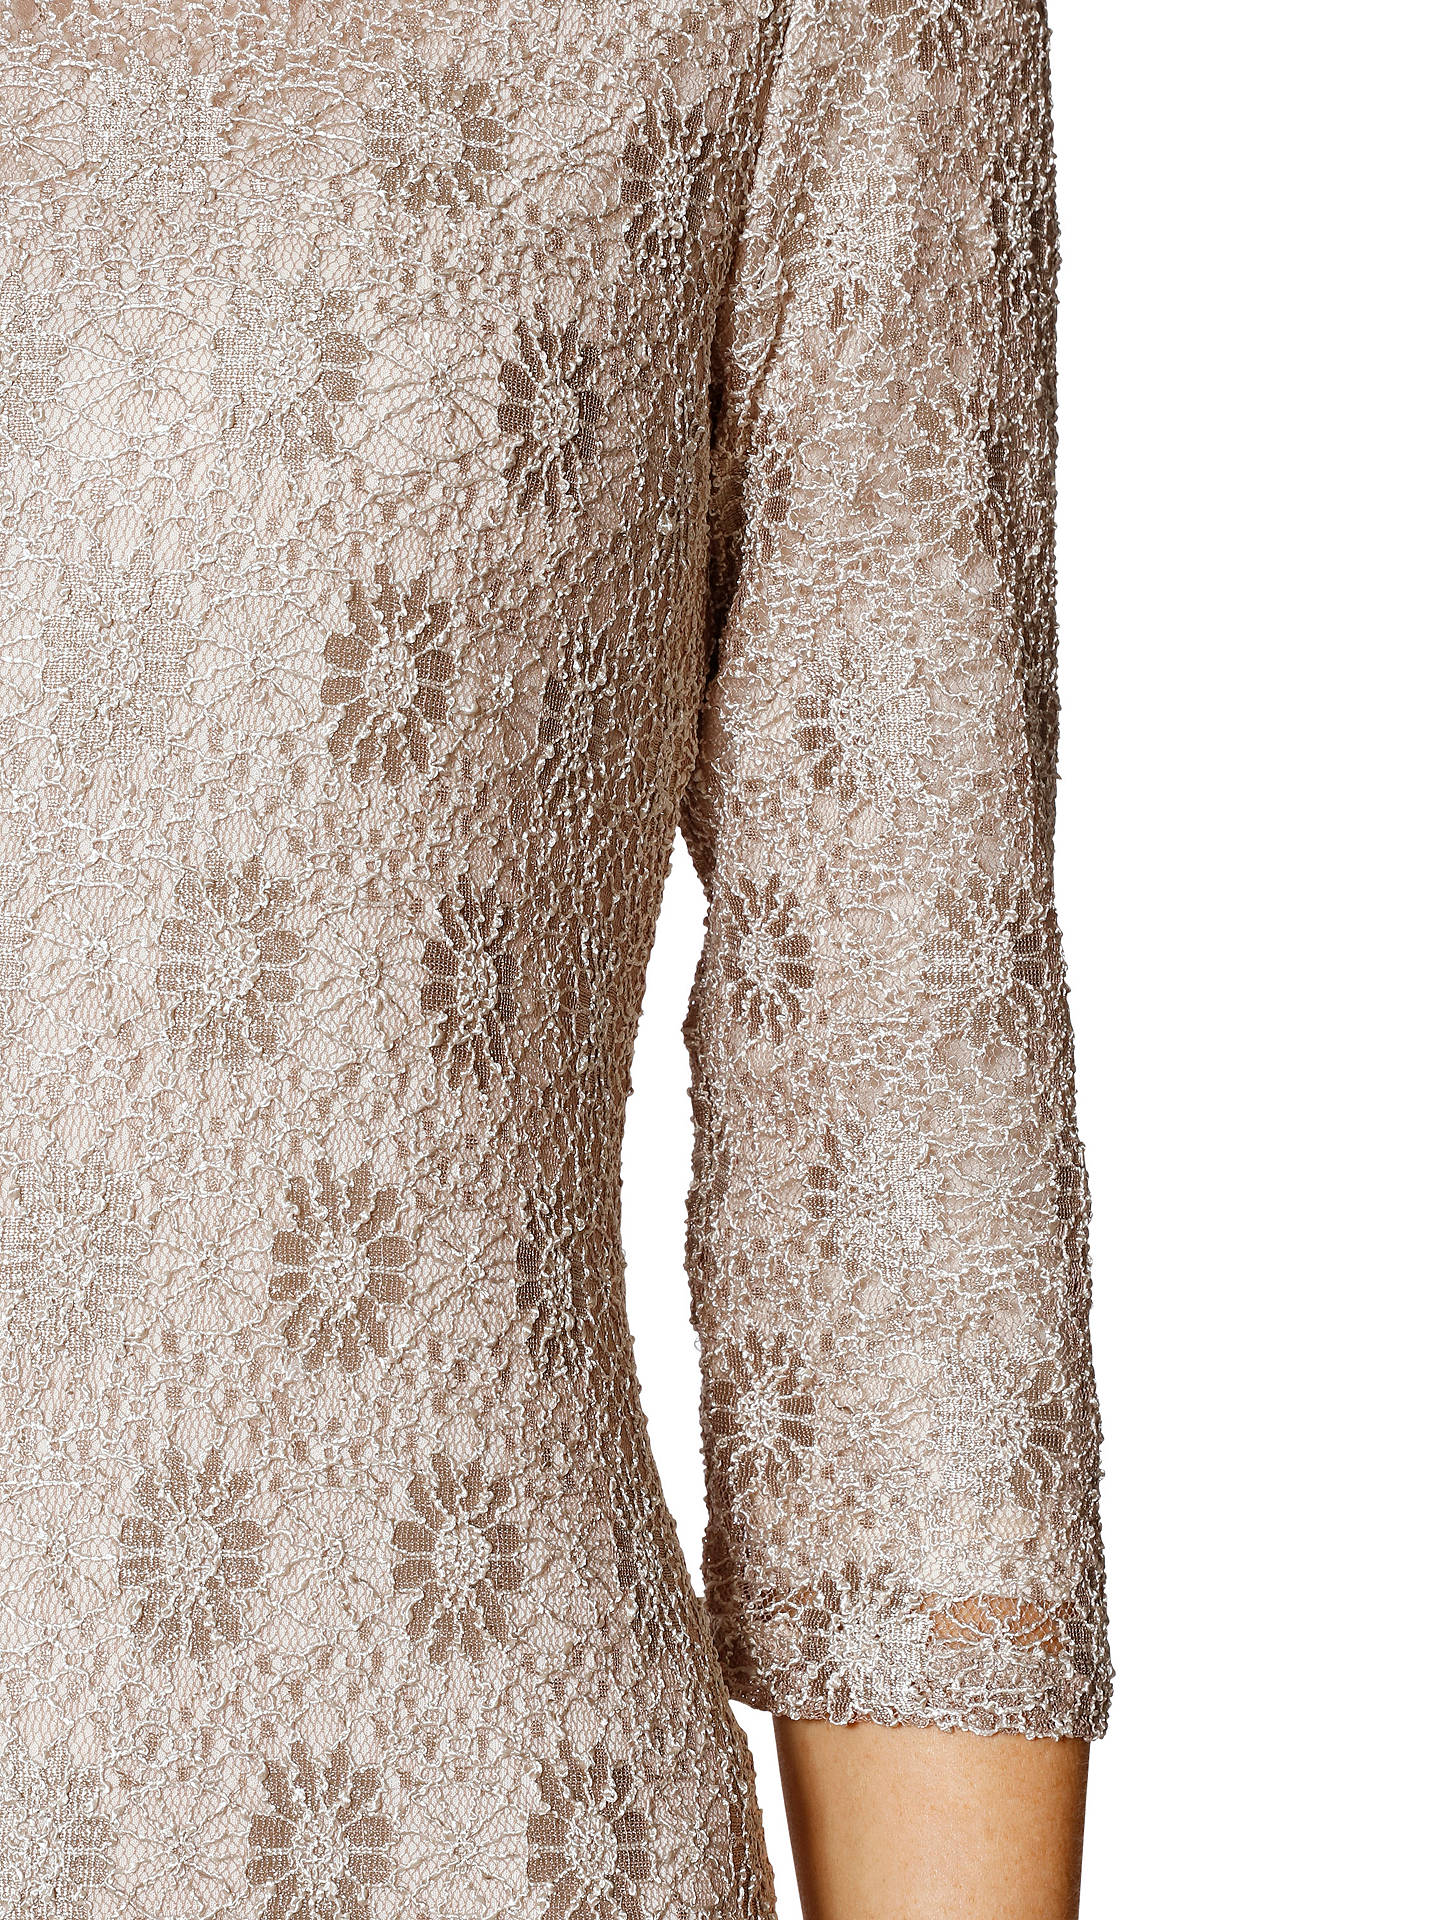 d1a3e8fc0 ... Buy Gina Bacconi Holly Lace Long Sleeve Maxi Dress, Beige, 20 Online at  johnlewis